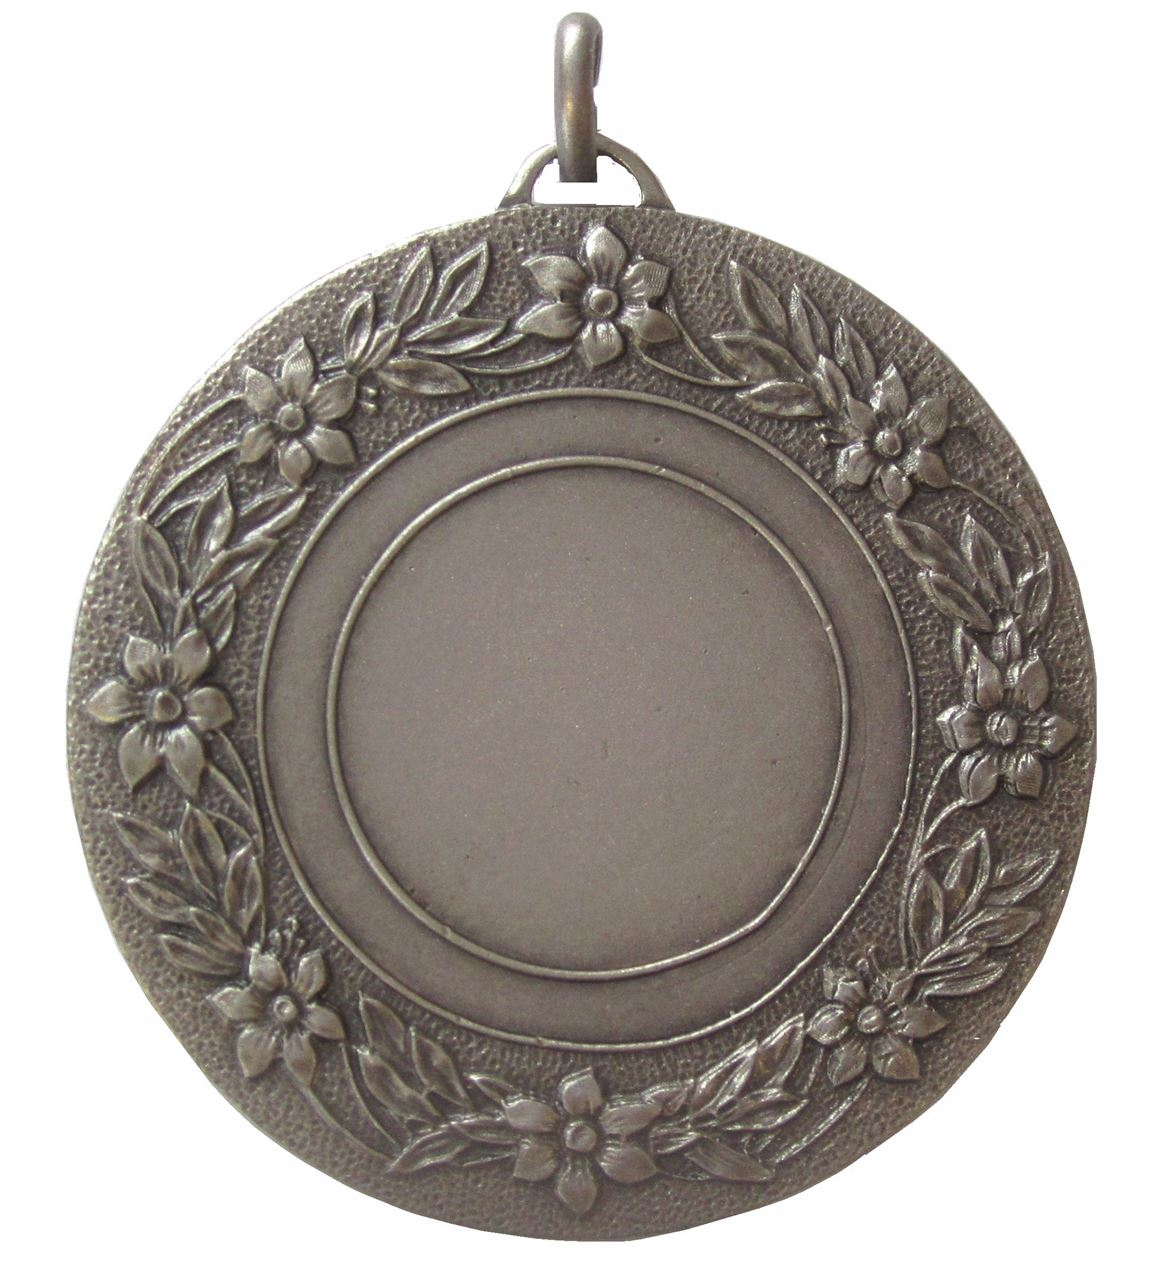 Silver Quality Floral Medal (size: 50mm) - 5809E